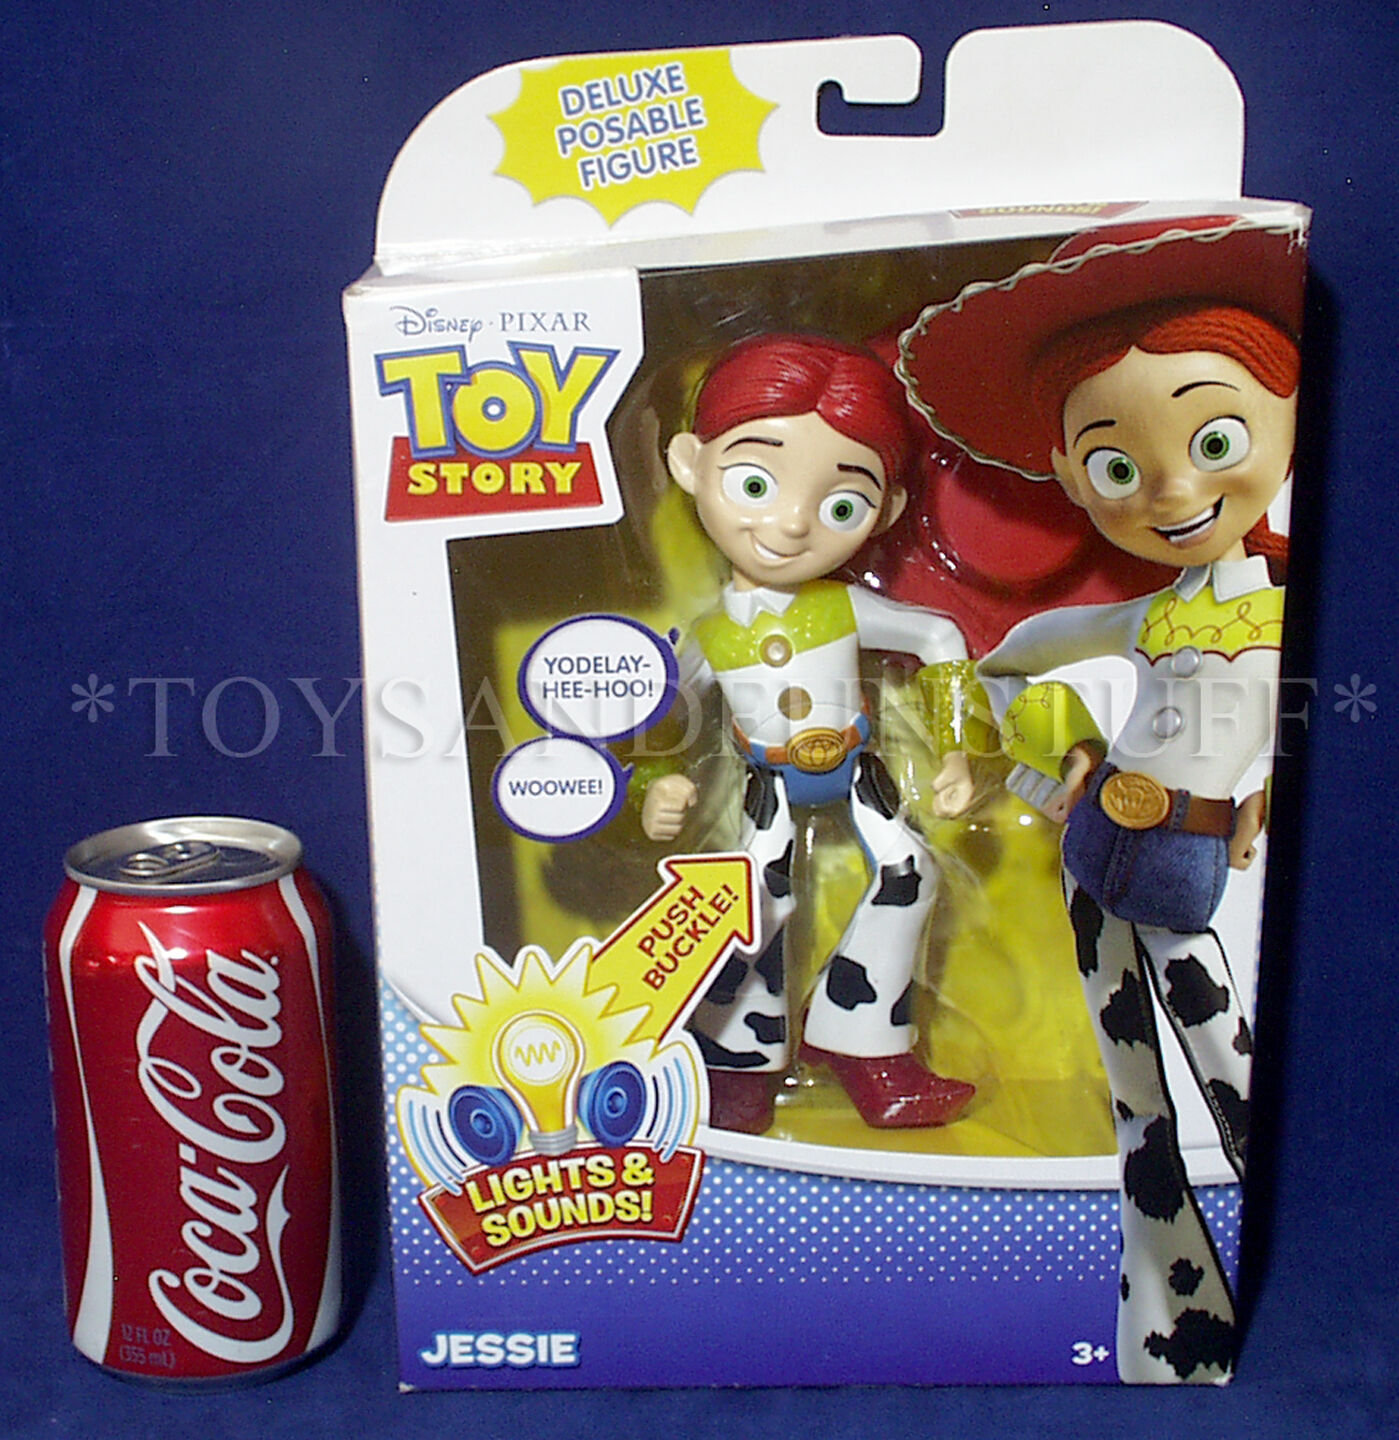 NEW Toy Story JESSIE 7 7 7  Deluxe Posable Figure - LIGHTS & SOUNDS - Talk & Glow e16f8a